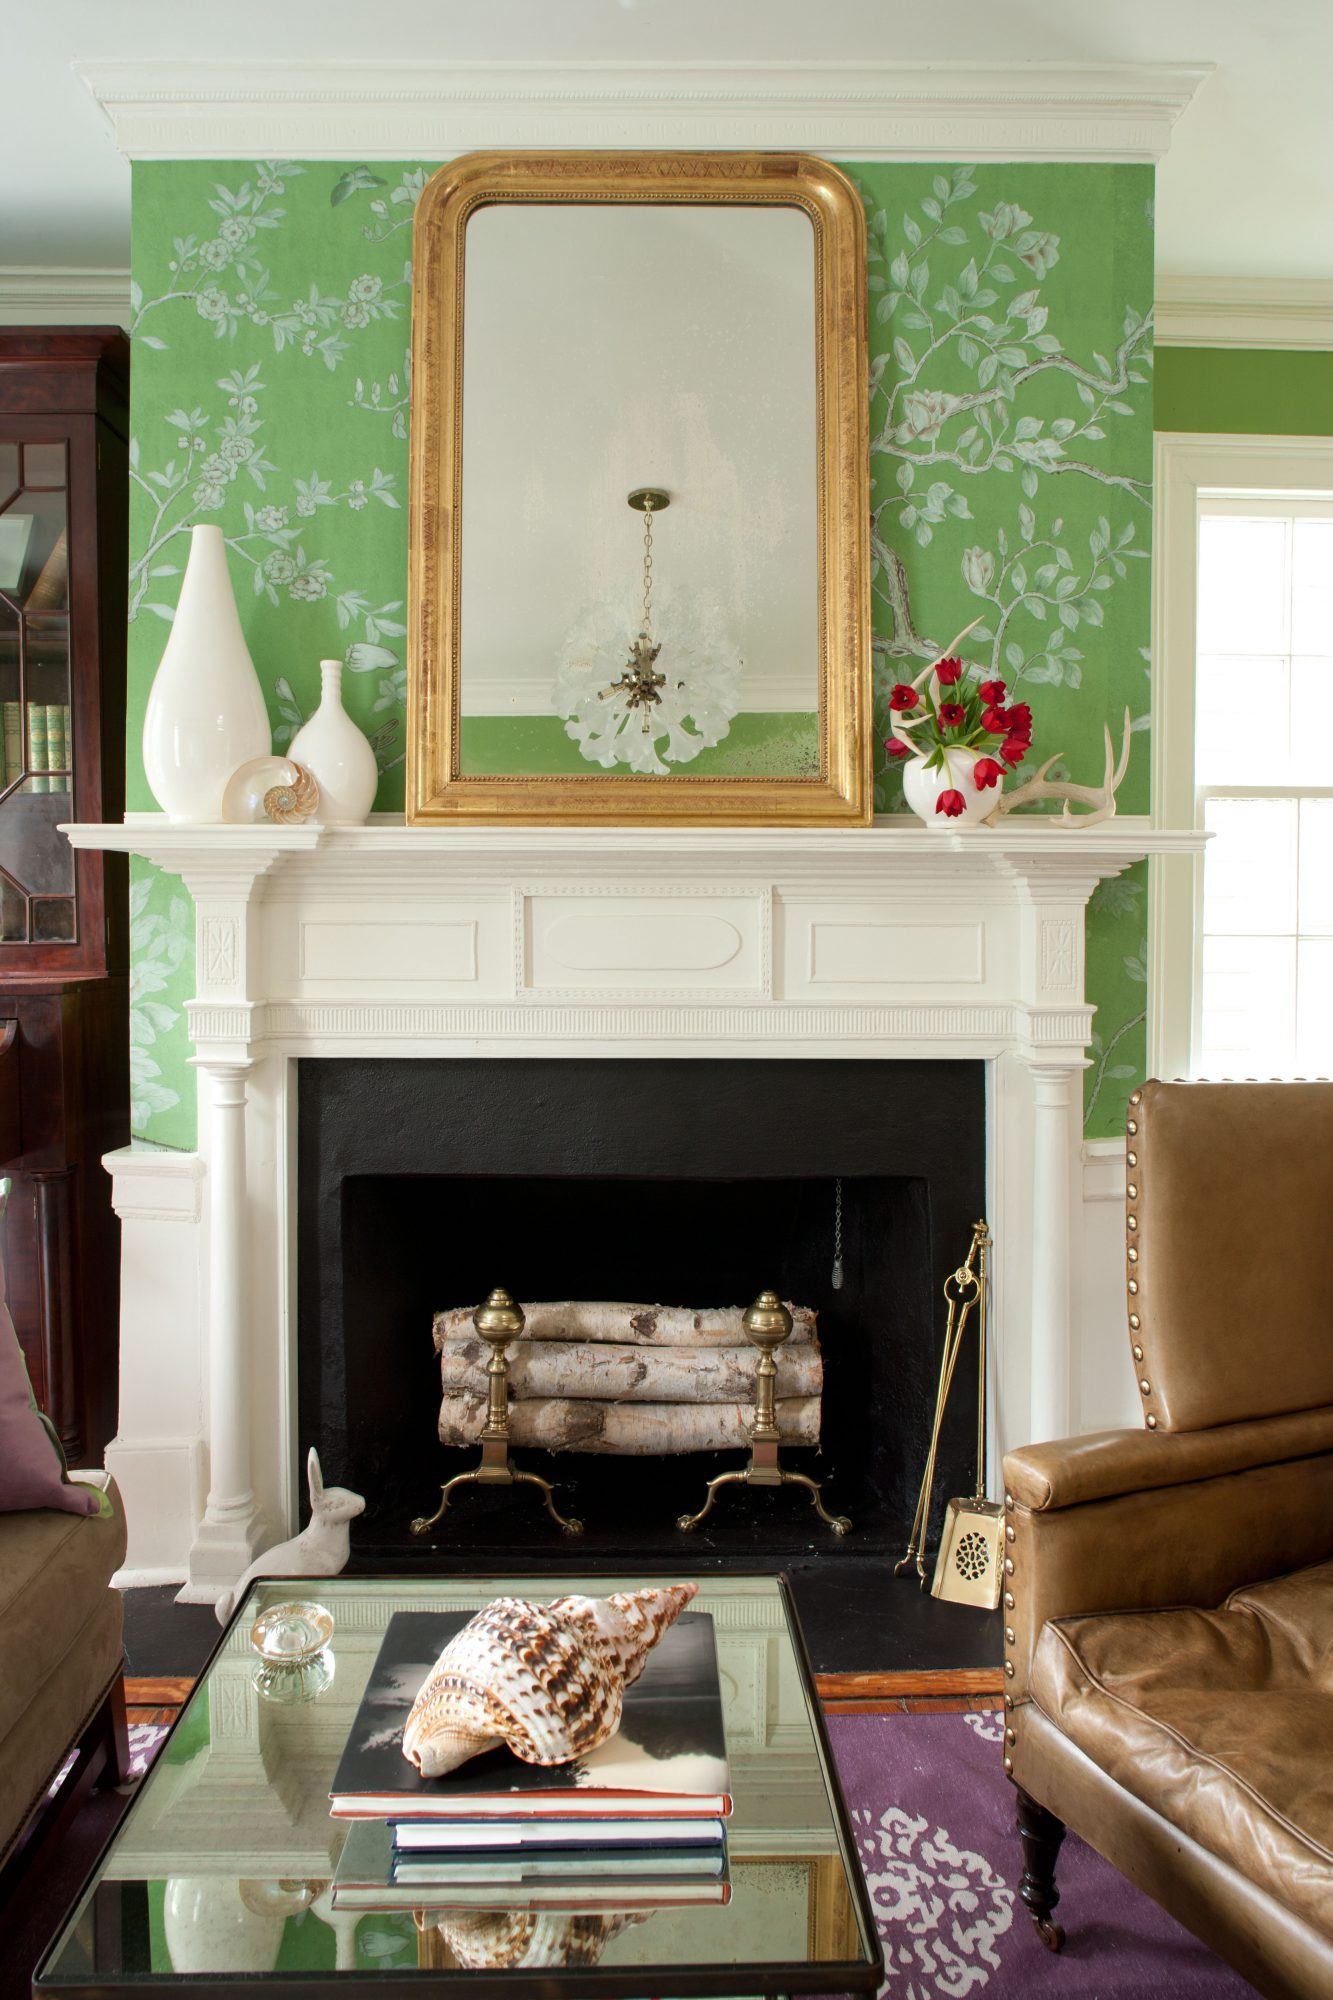 Charleston Living Room with British and European Influences